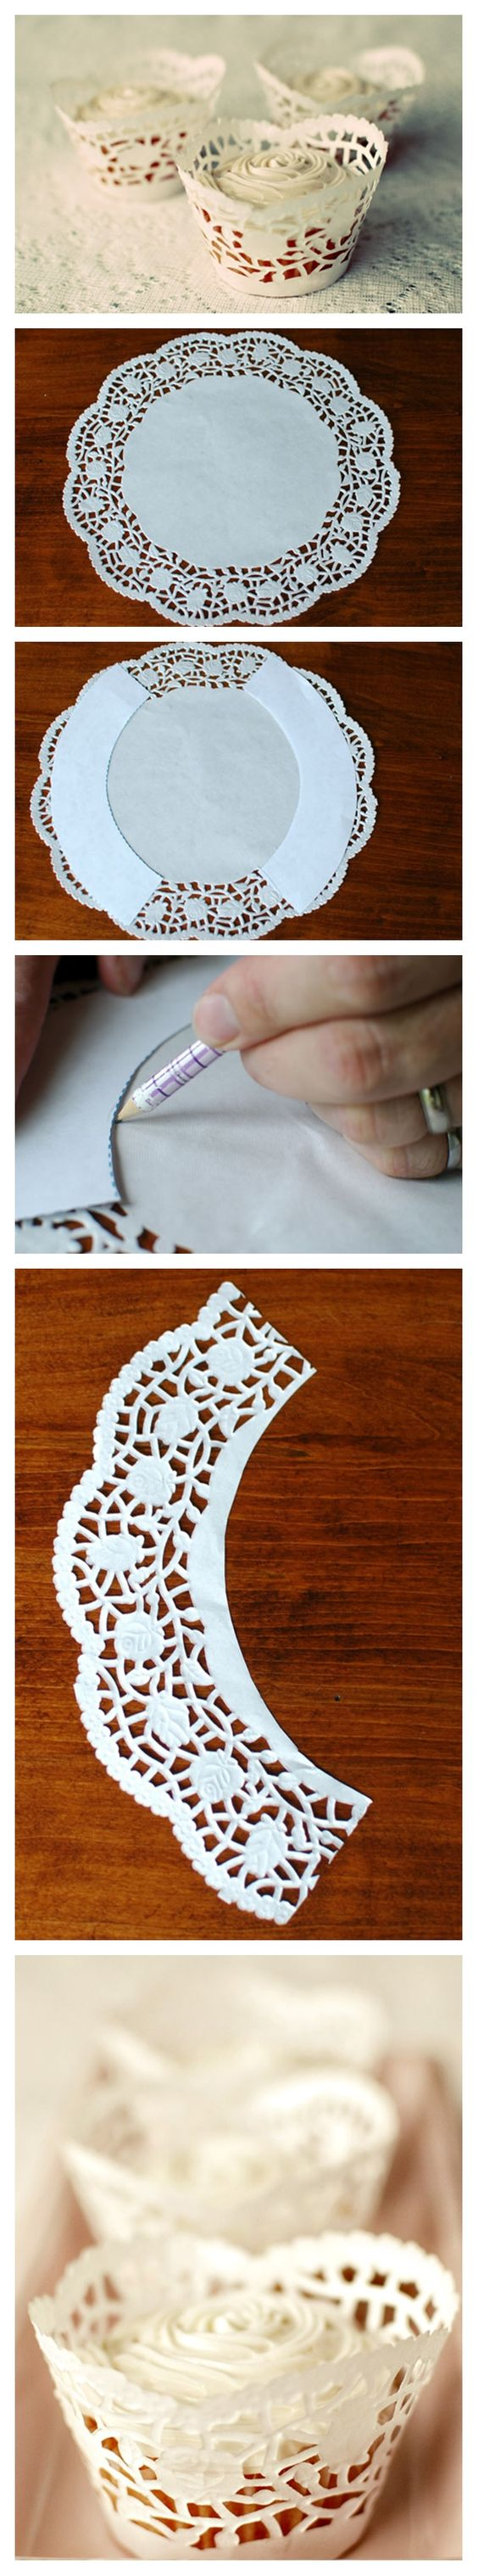 Cupcake Wrappers Made from Doilies Free Cupcake Wrapper Templat